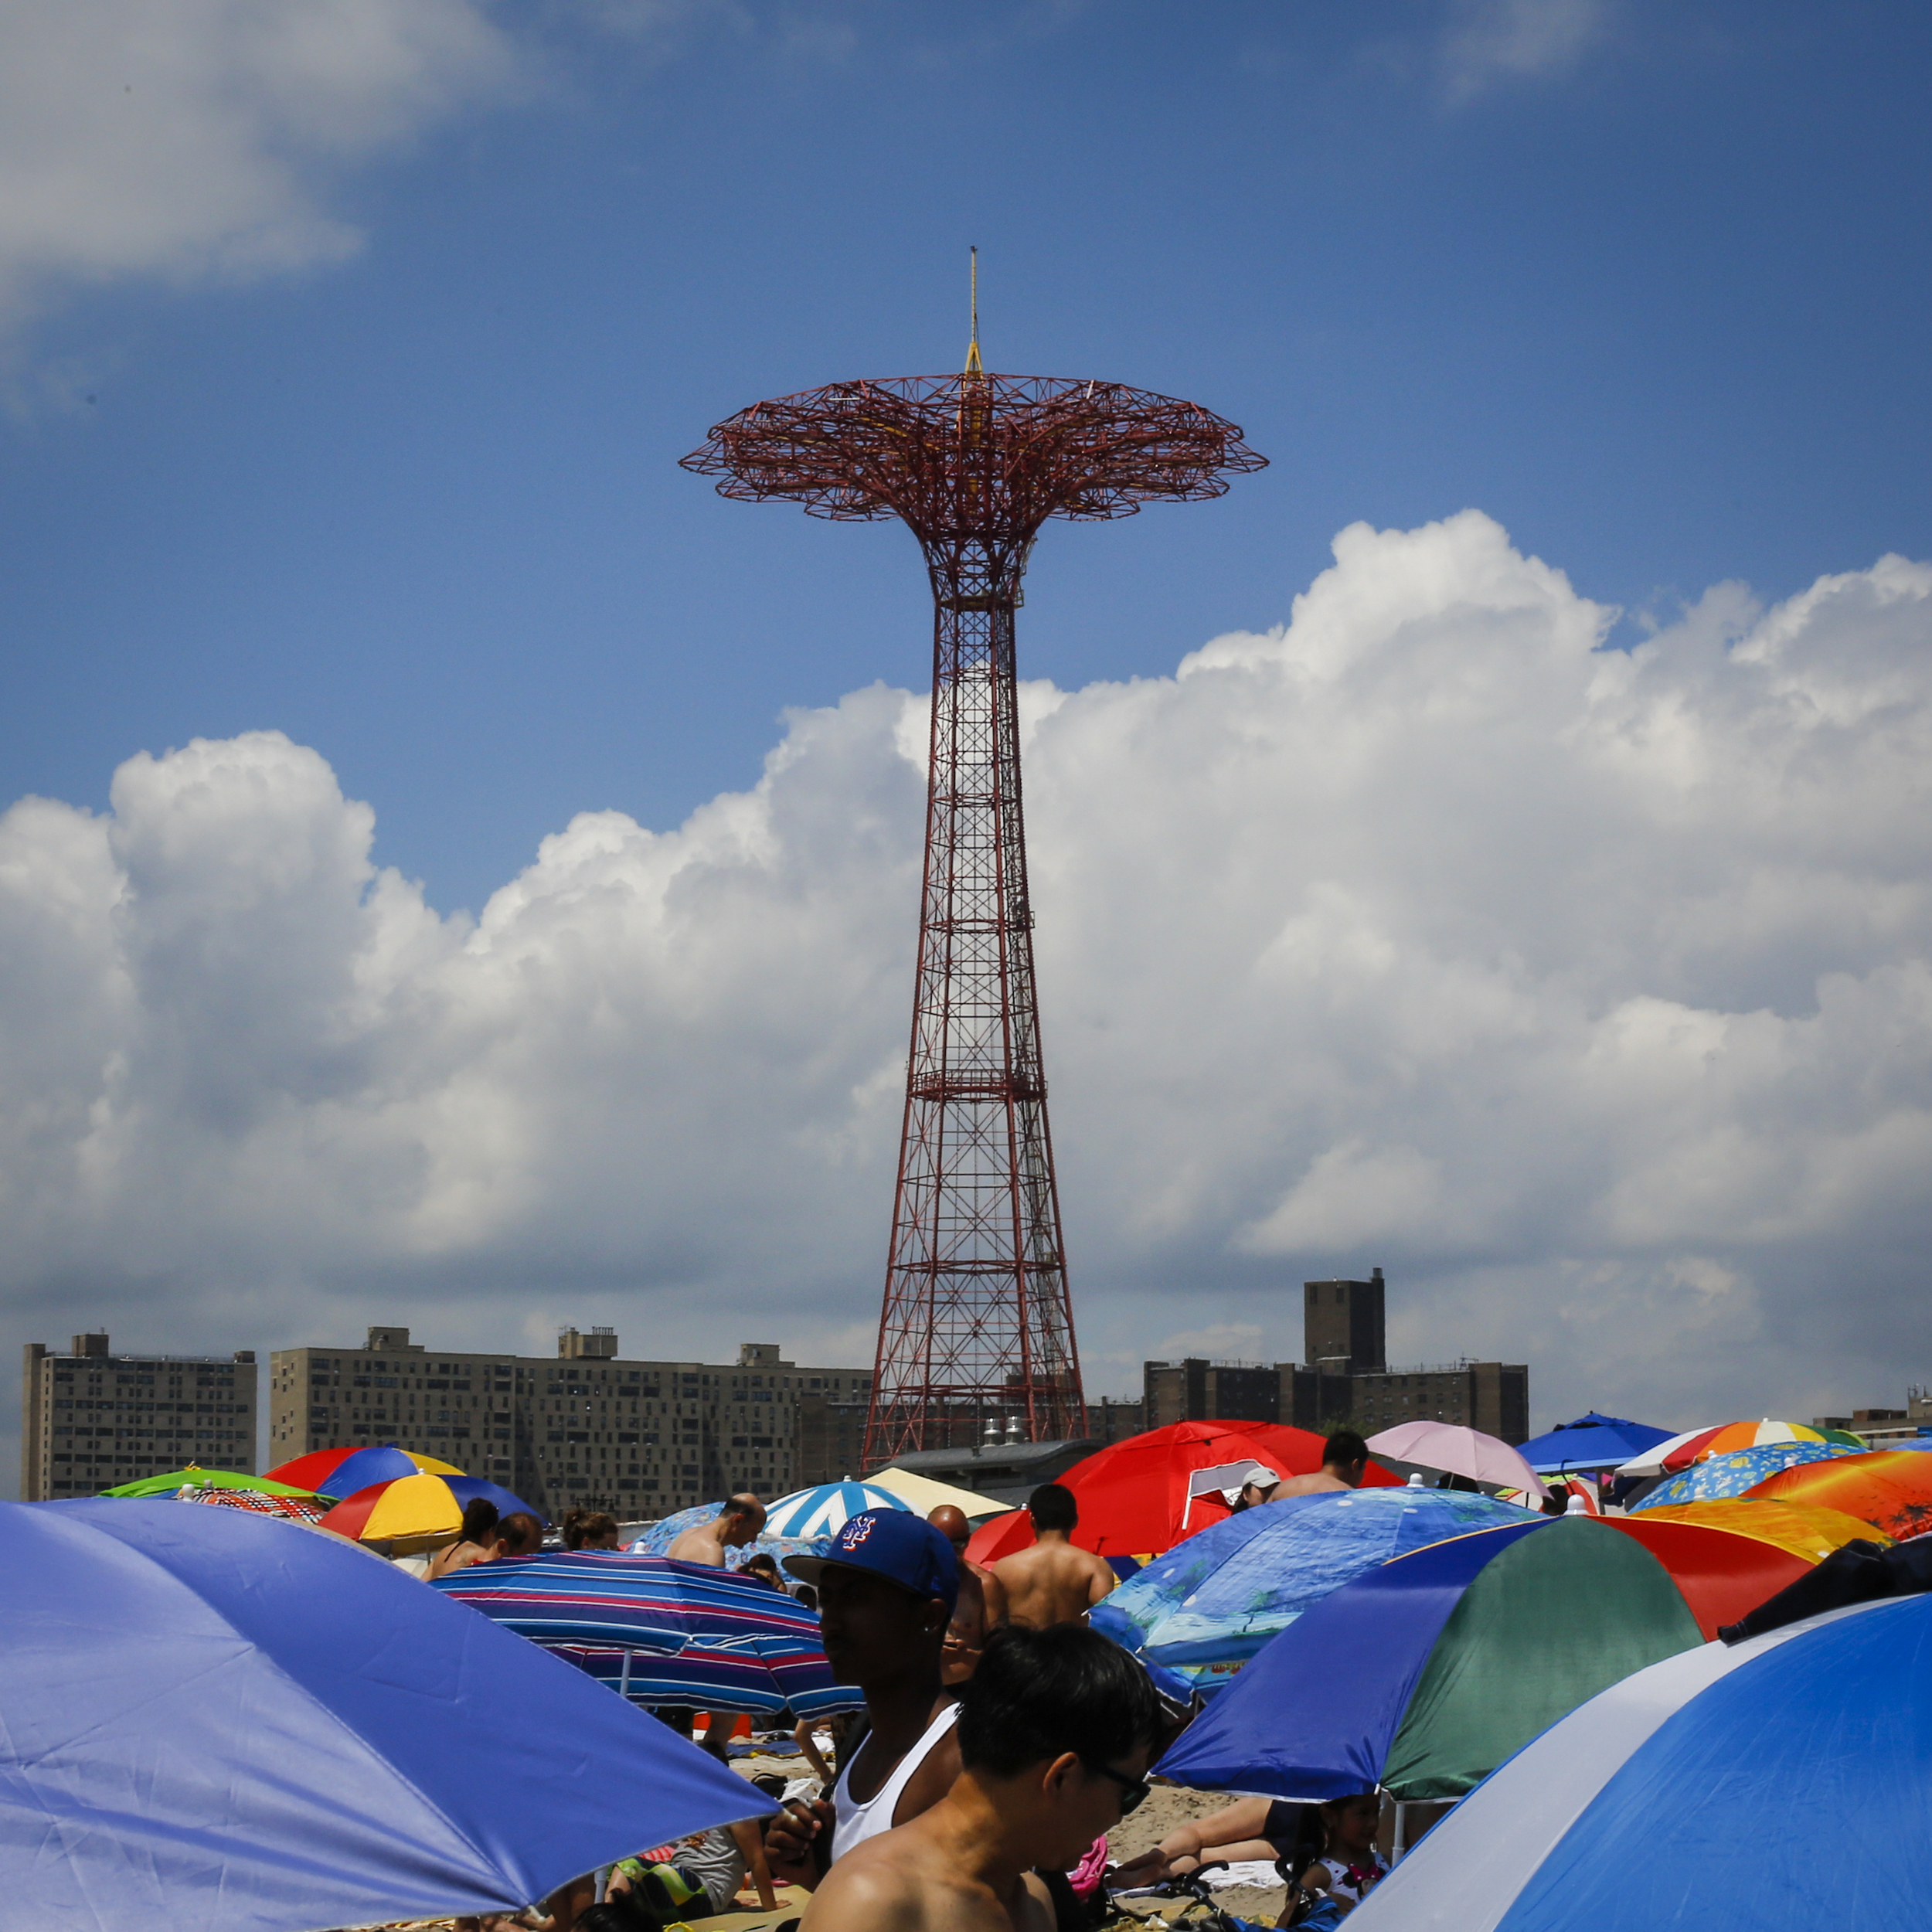 The 262- foot Parachute Jump at Fourth of July International Hot Dog Eating Contest at Coney Island in Brooklyn, N.Y. on Thursday, July 4, 2013.